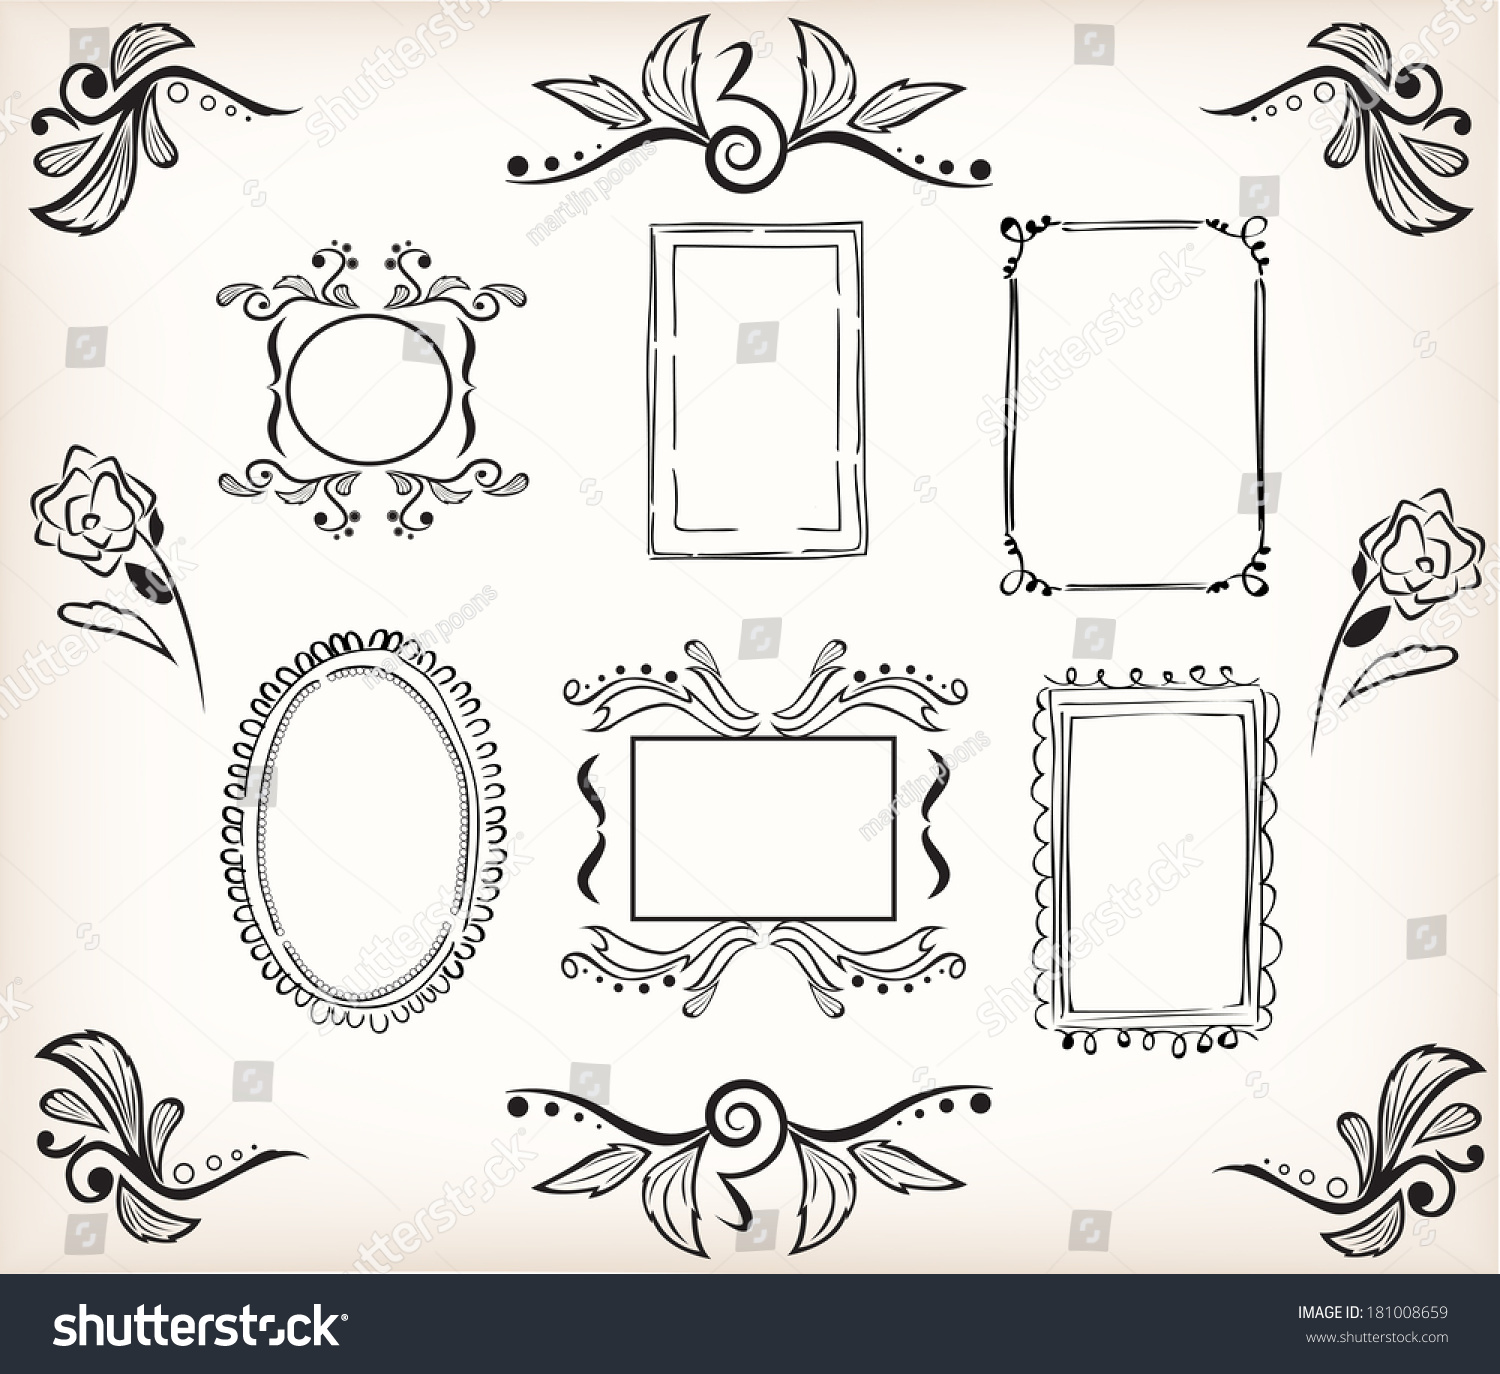 Calligraphic Borders Frames Easily Decorate Your Stock